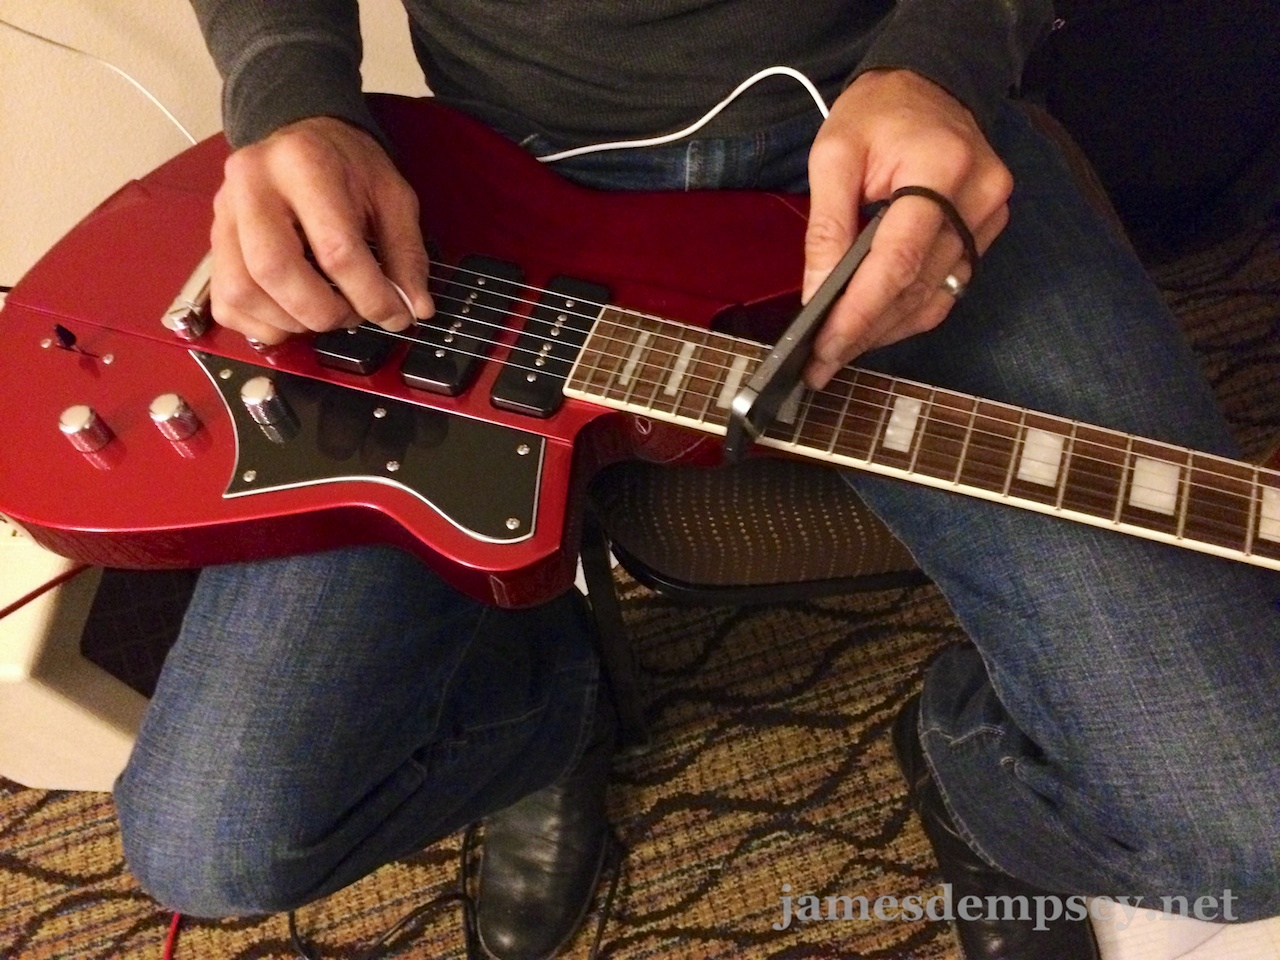 Closeup of using the edge of an iPhone as a guitar slide